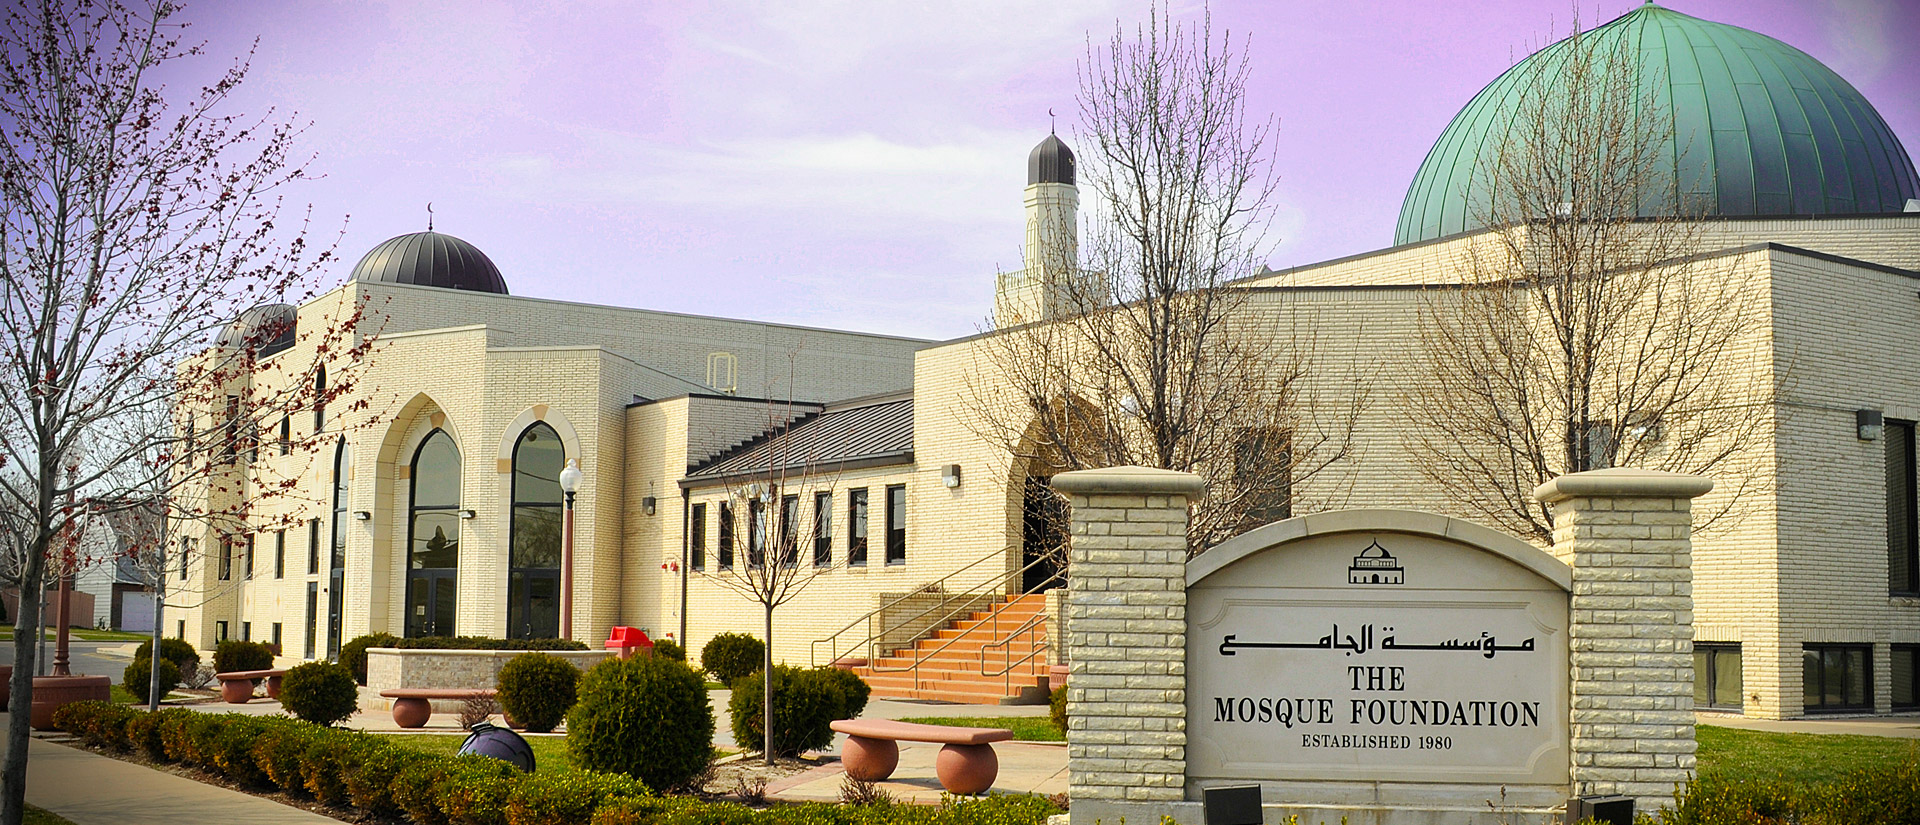 Mosque Foundation | Bridgeview, Illinois